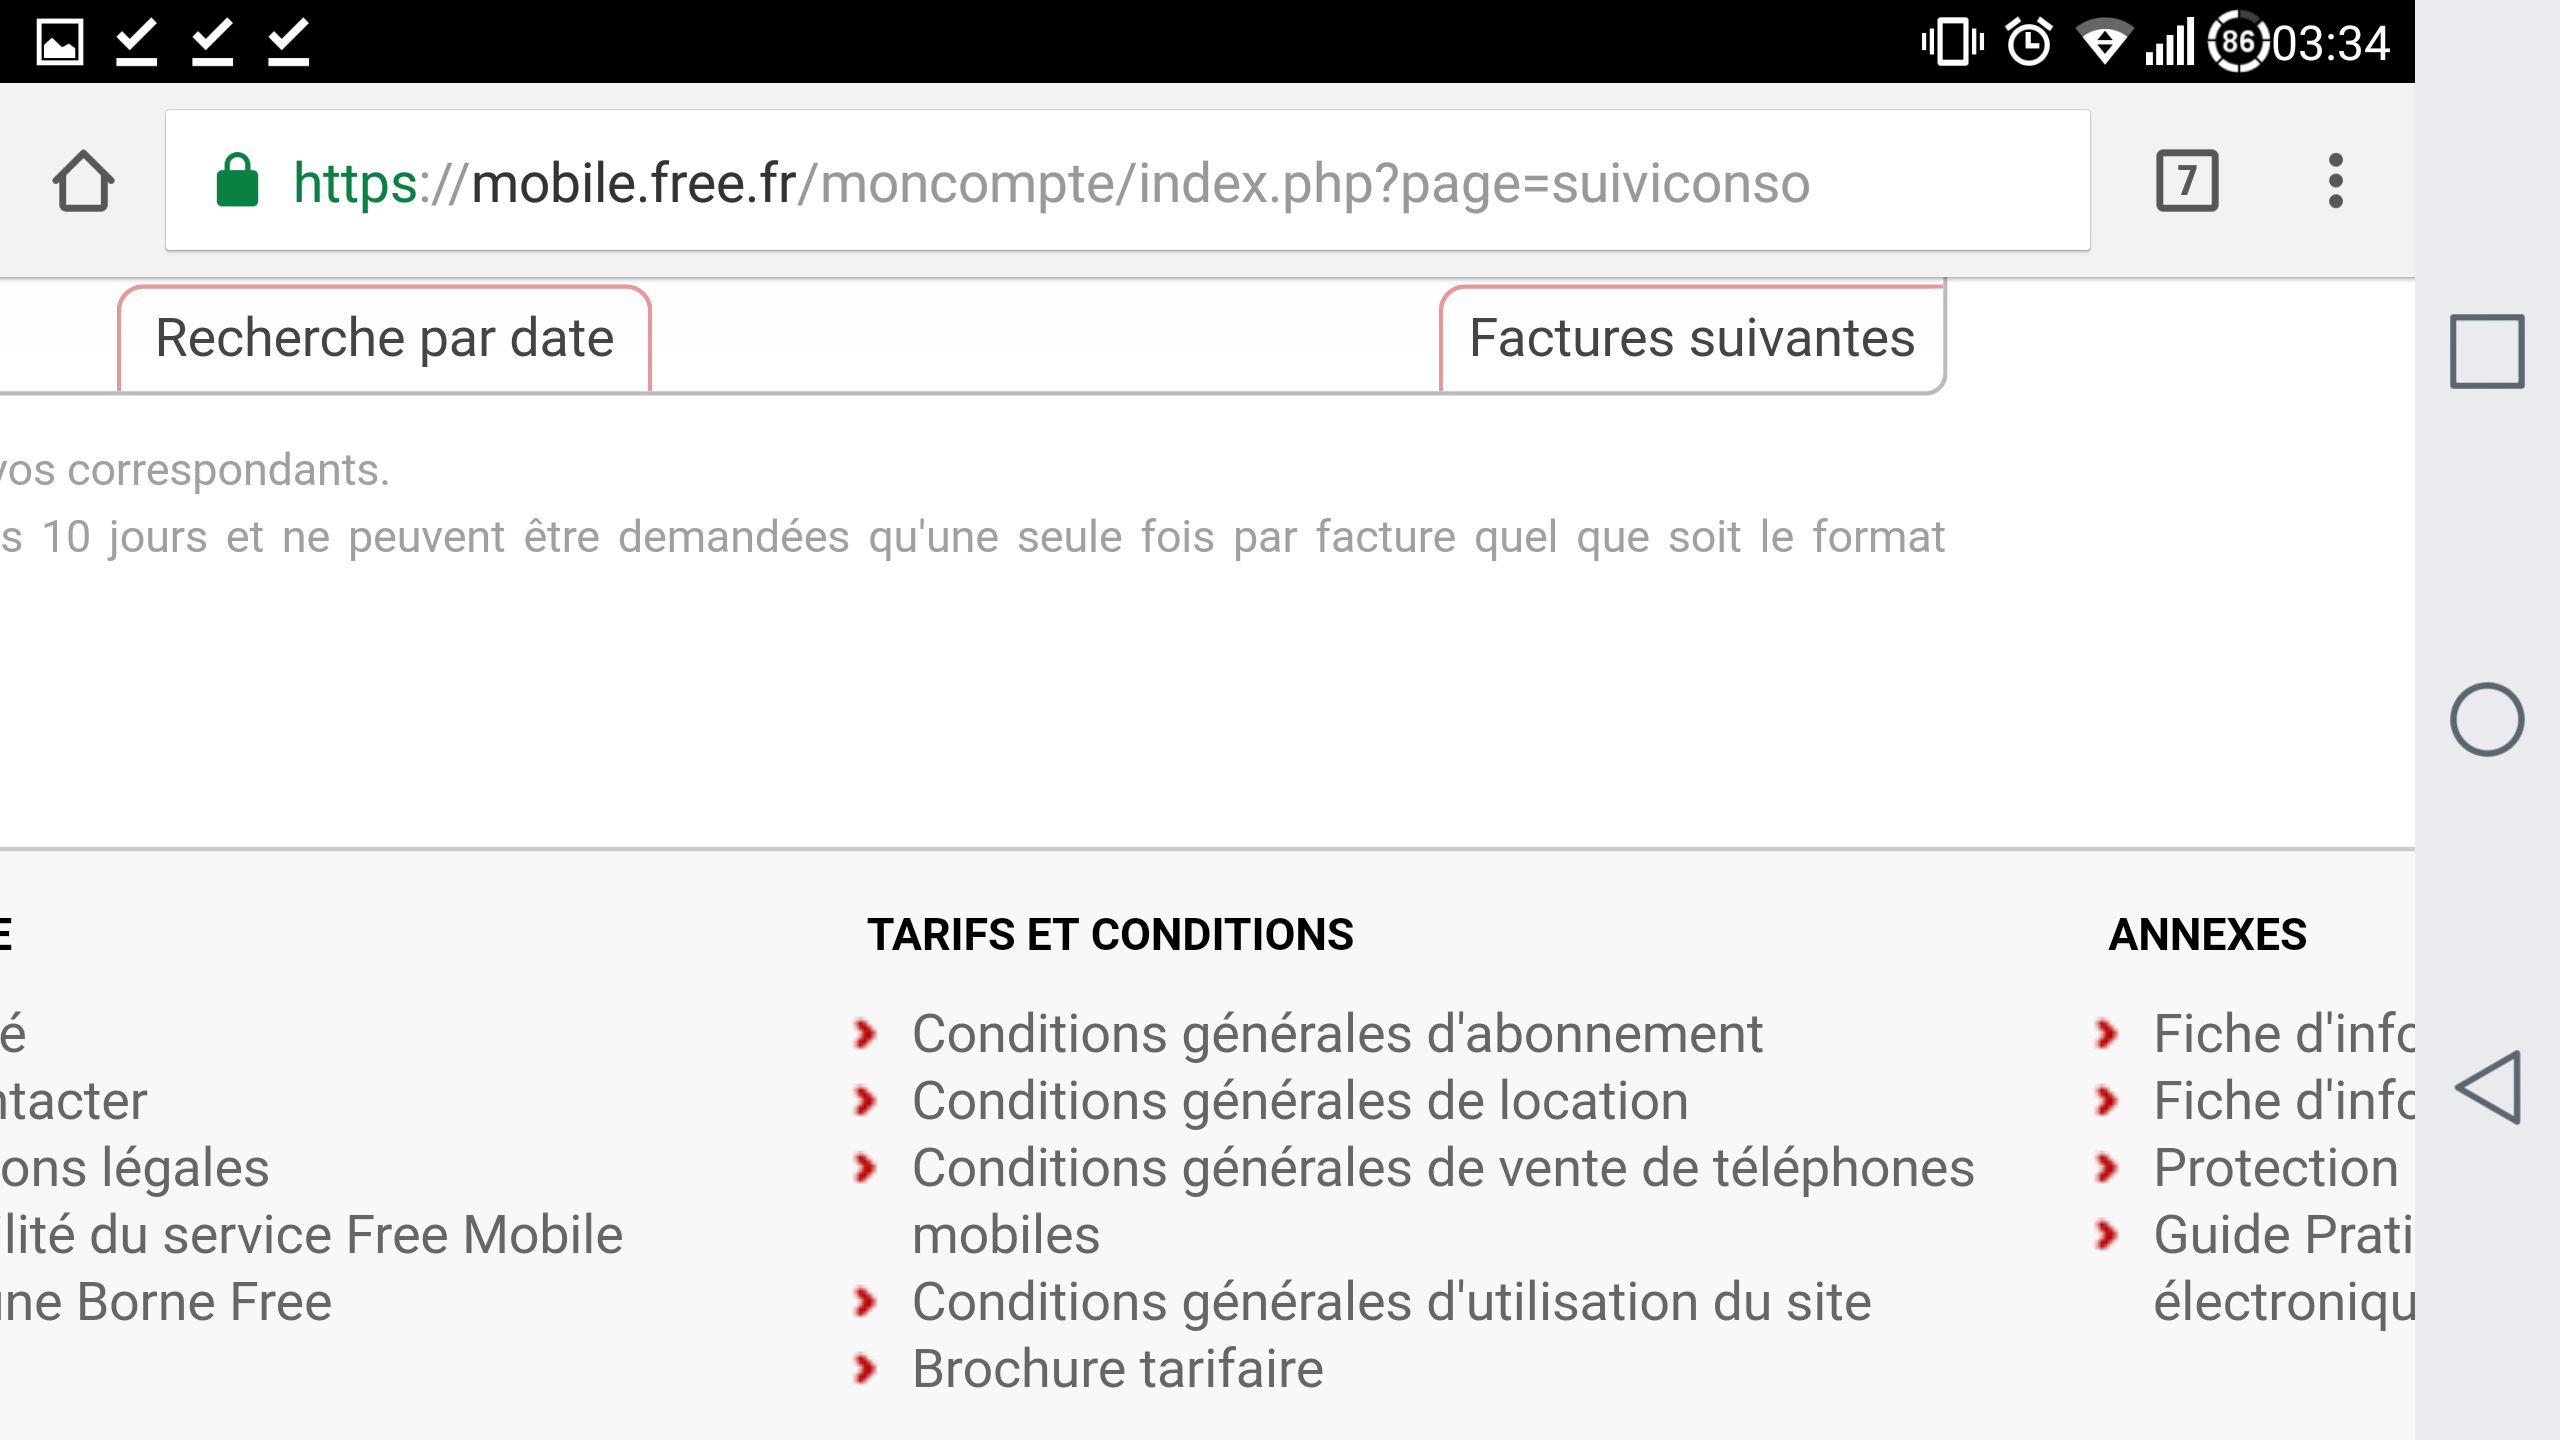 https mobile free fr moncompte index php page recouvrement